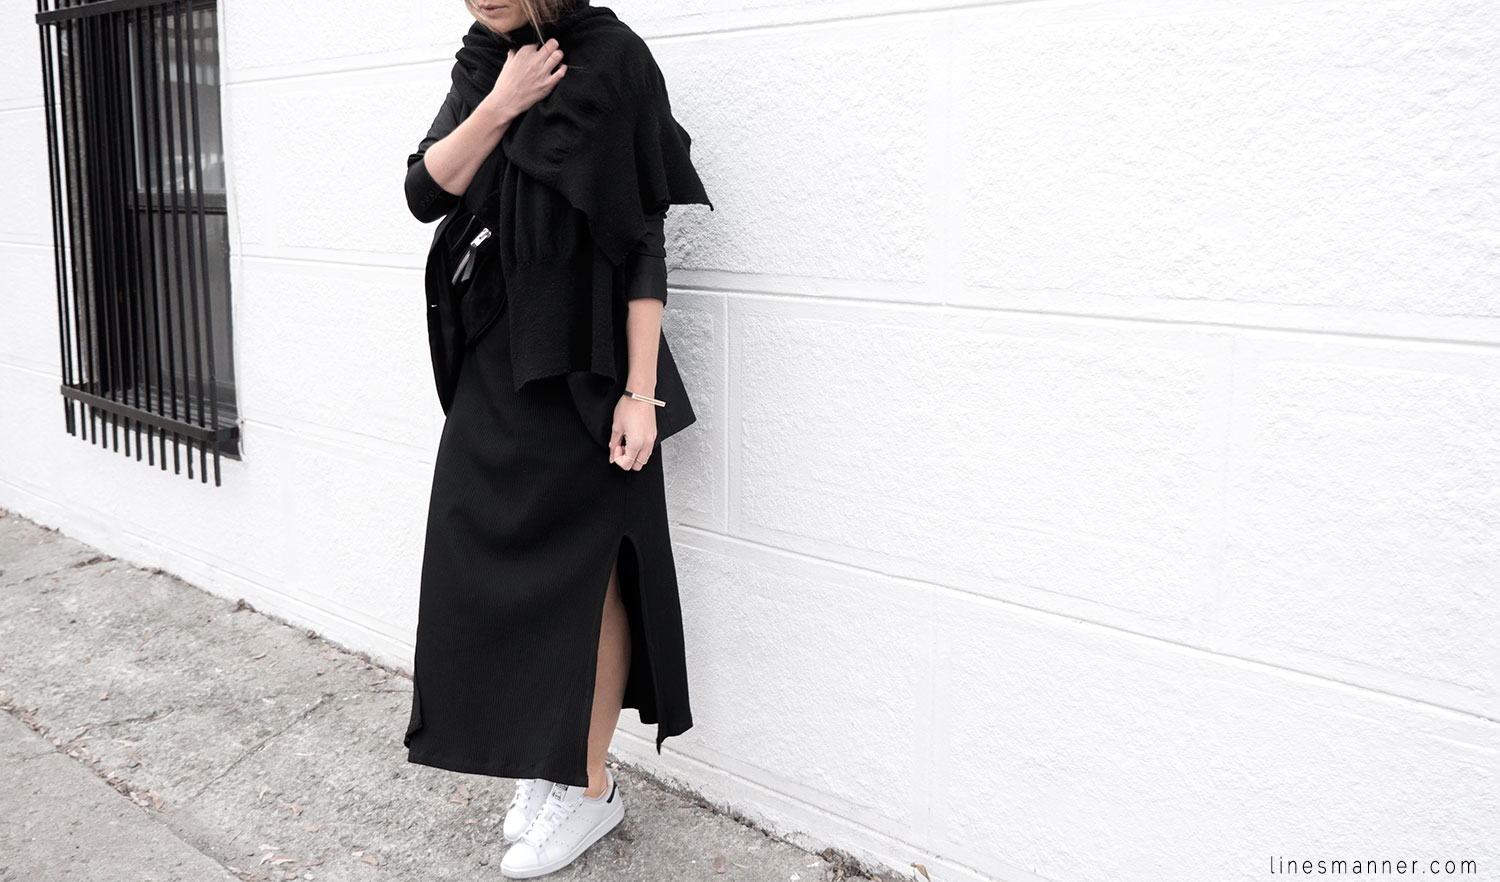 Lines-Manner-Black-Relaxed-Tone_on_Tone-Monochrome-Minimal-Sophistication-Comfort-Modern-Simplicity-Casual-Sporty_Luxe-Slit_Dress-Thrid_Form-Blazer-Essentials-Details-Basics-Timeless-Verstatile-Staple-Wardrobe-Sleek-Clean_Lines-All_Black_Everything-8